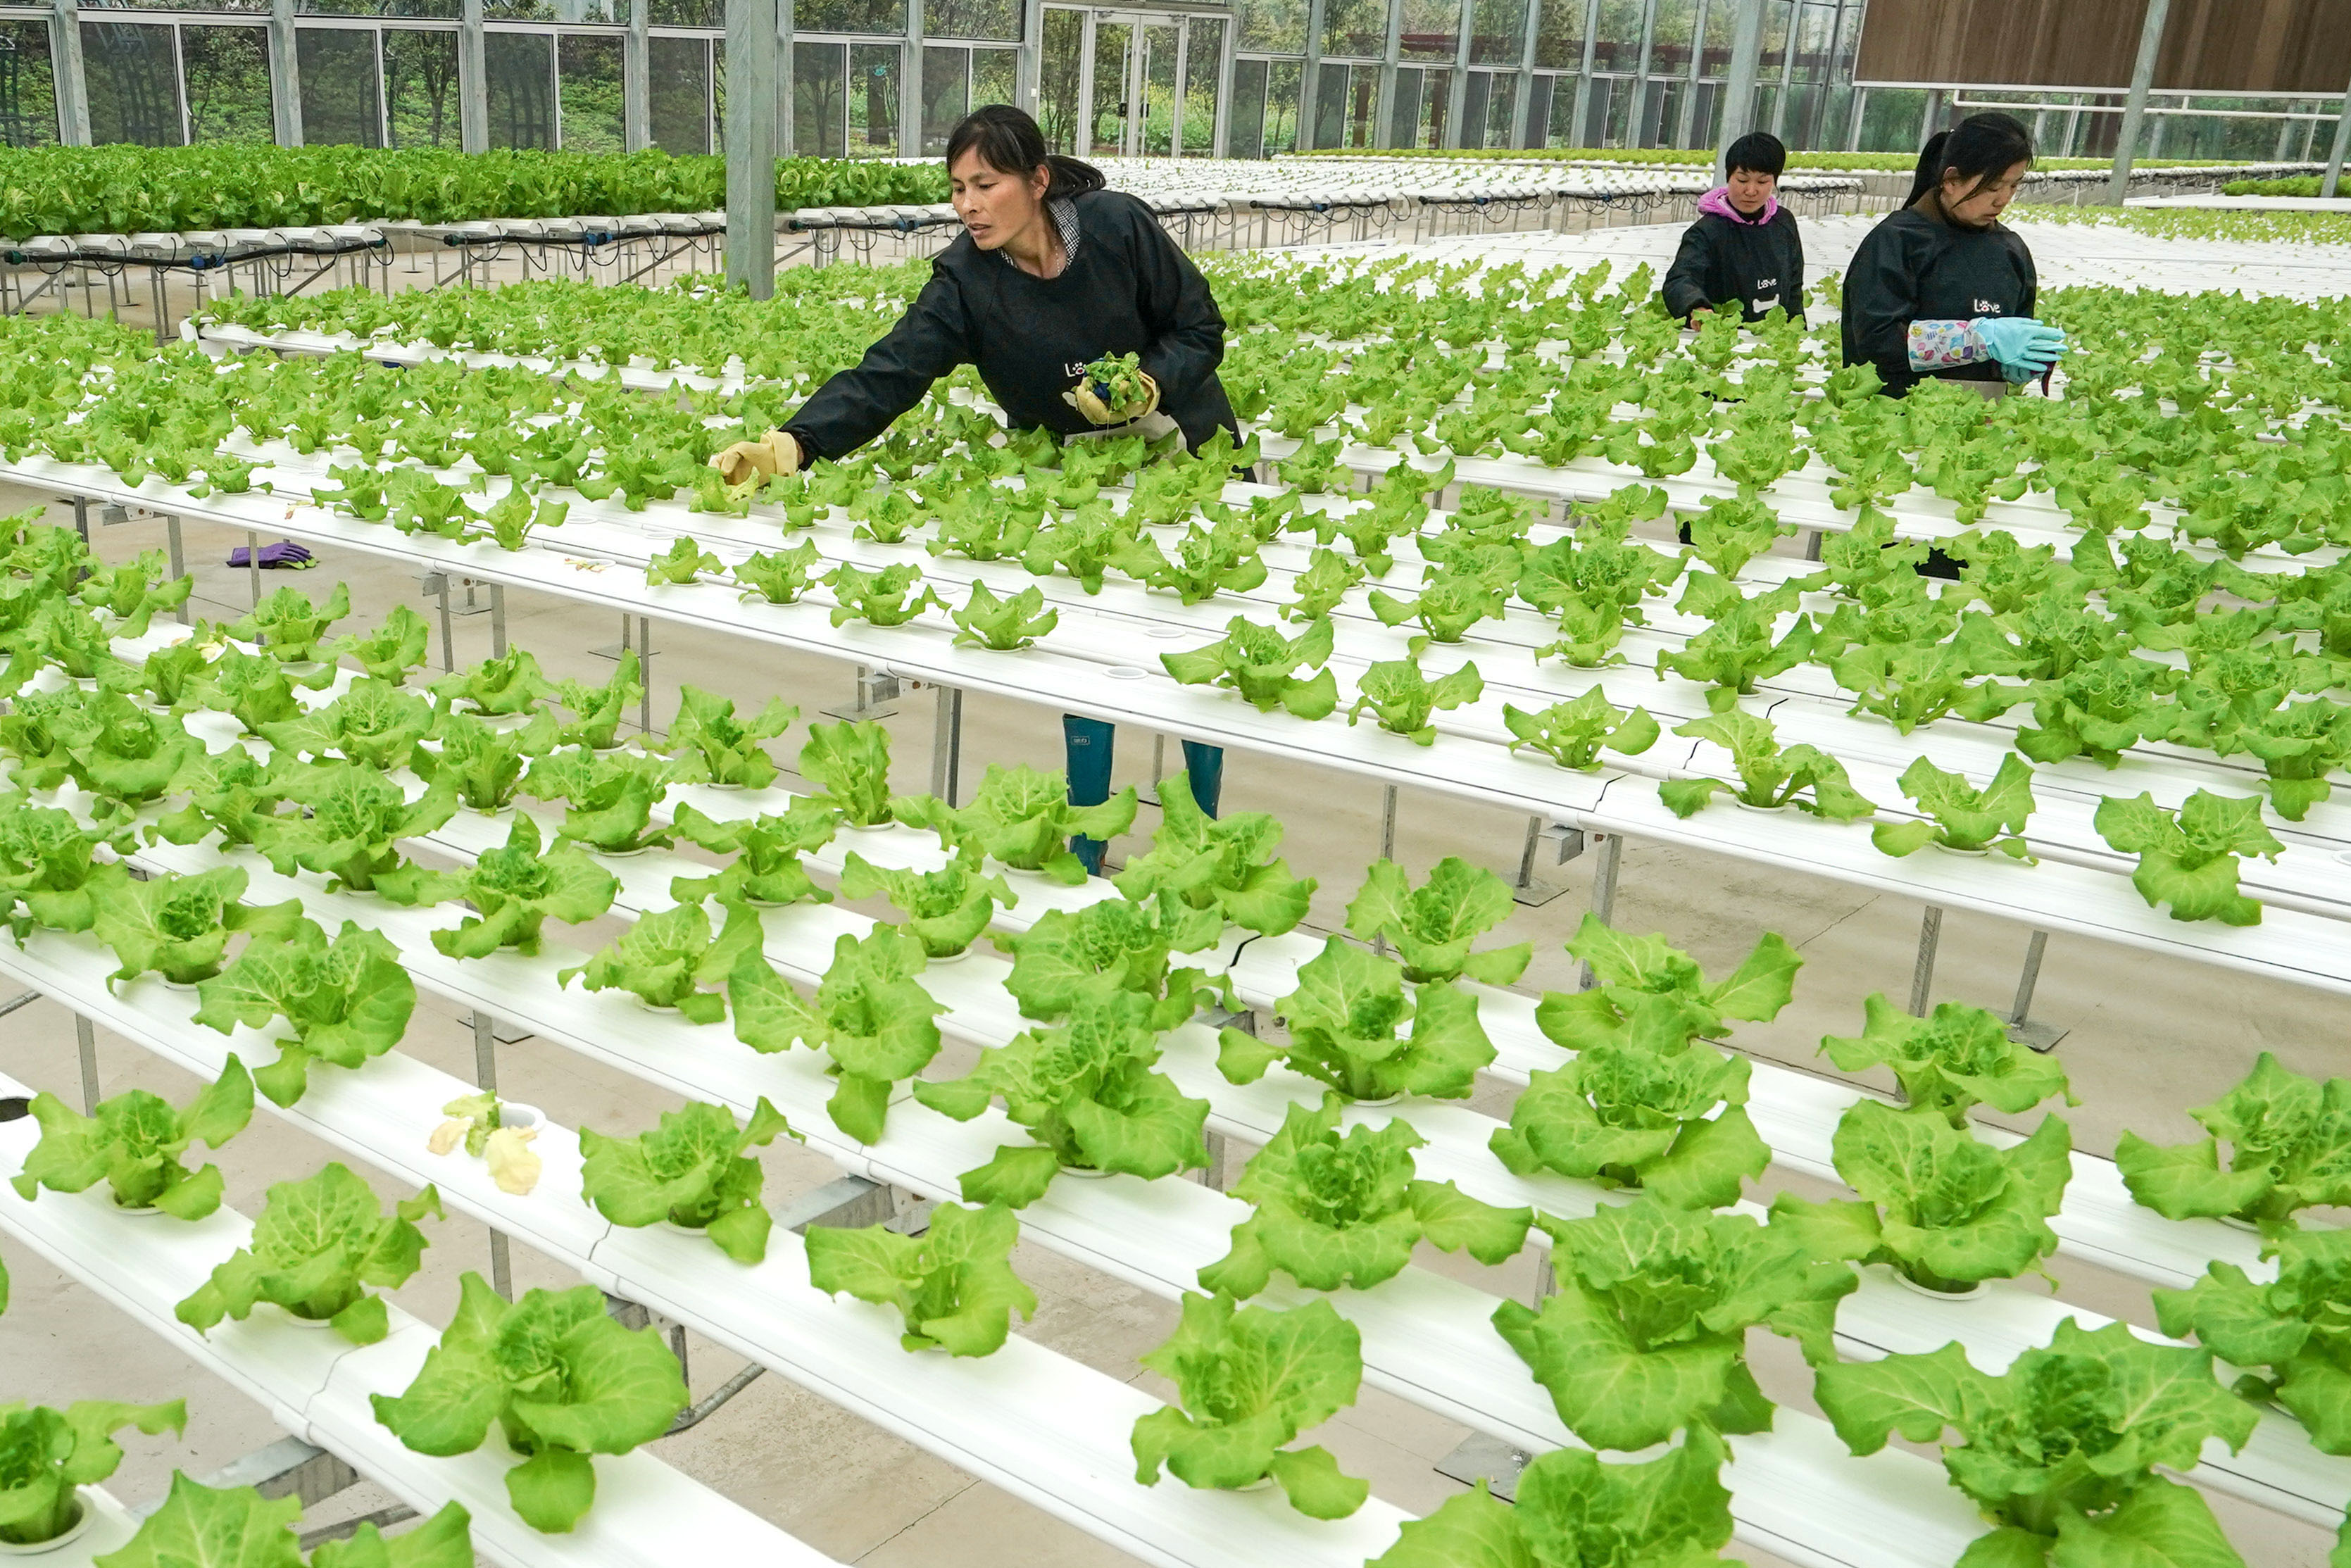 Interview: Big opportunity to develop agriculture technology